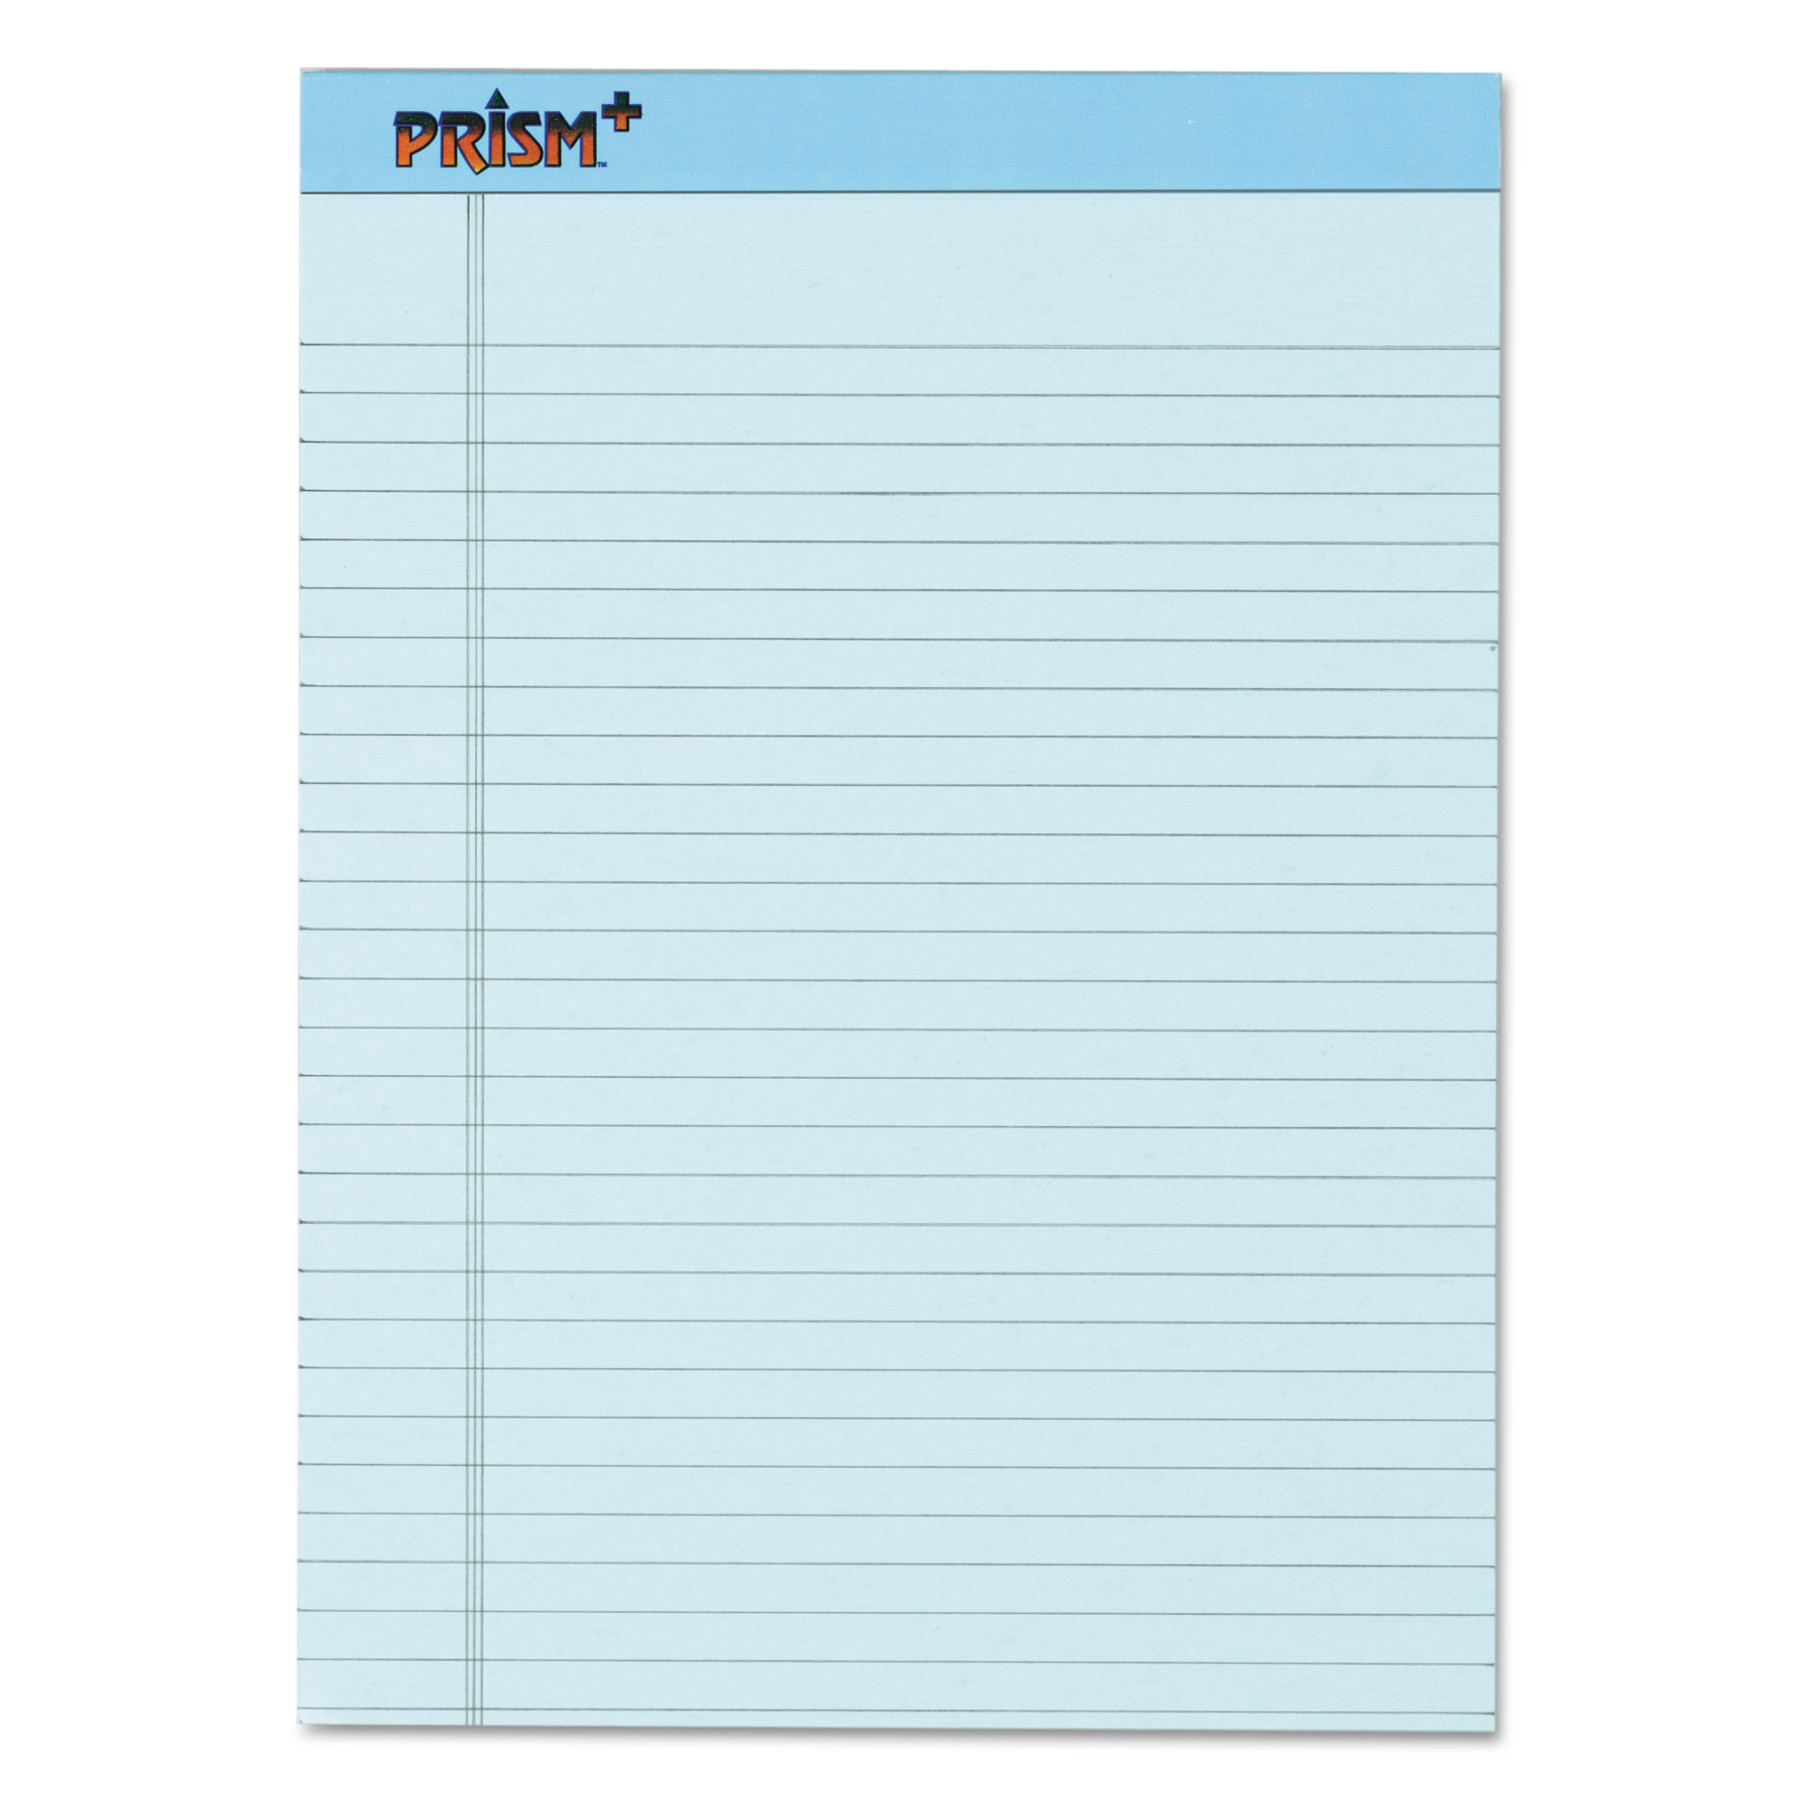 TOPS Prism Plus Colored Legal Pads, 8 1/2 x 11 3/4, Blue, 50 Sheets, Dozen